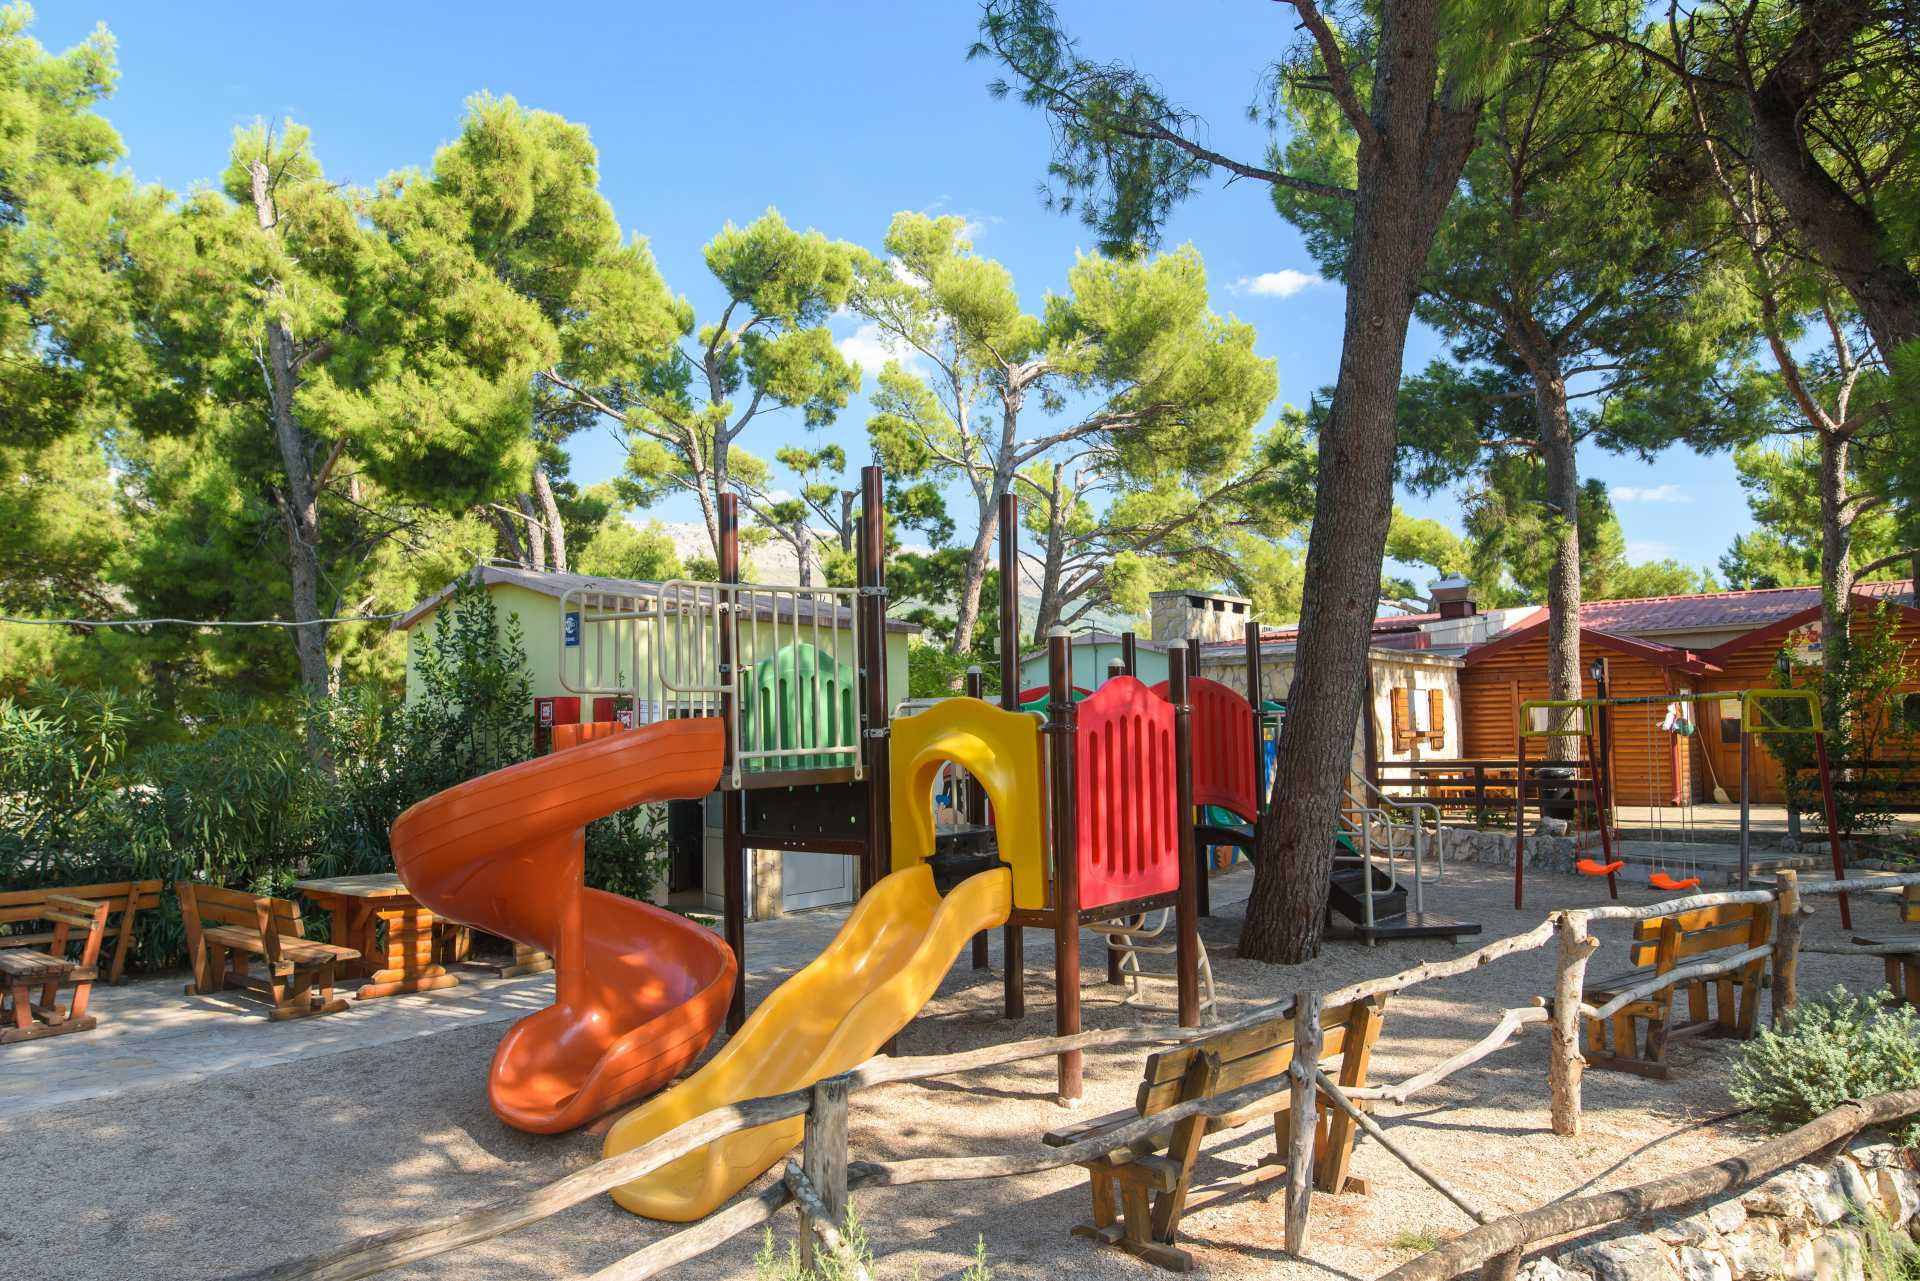 Additional facilities in campsite's offer